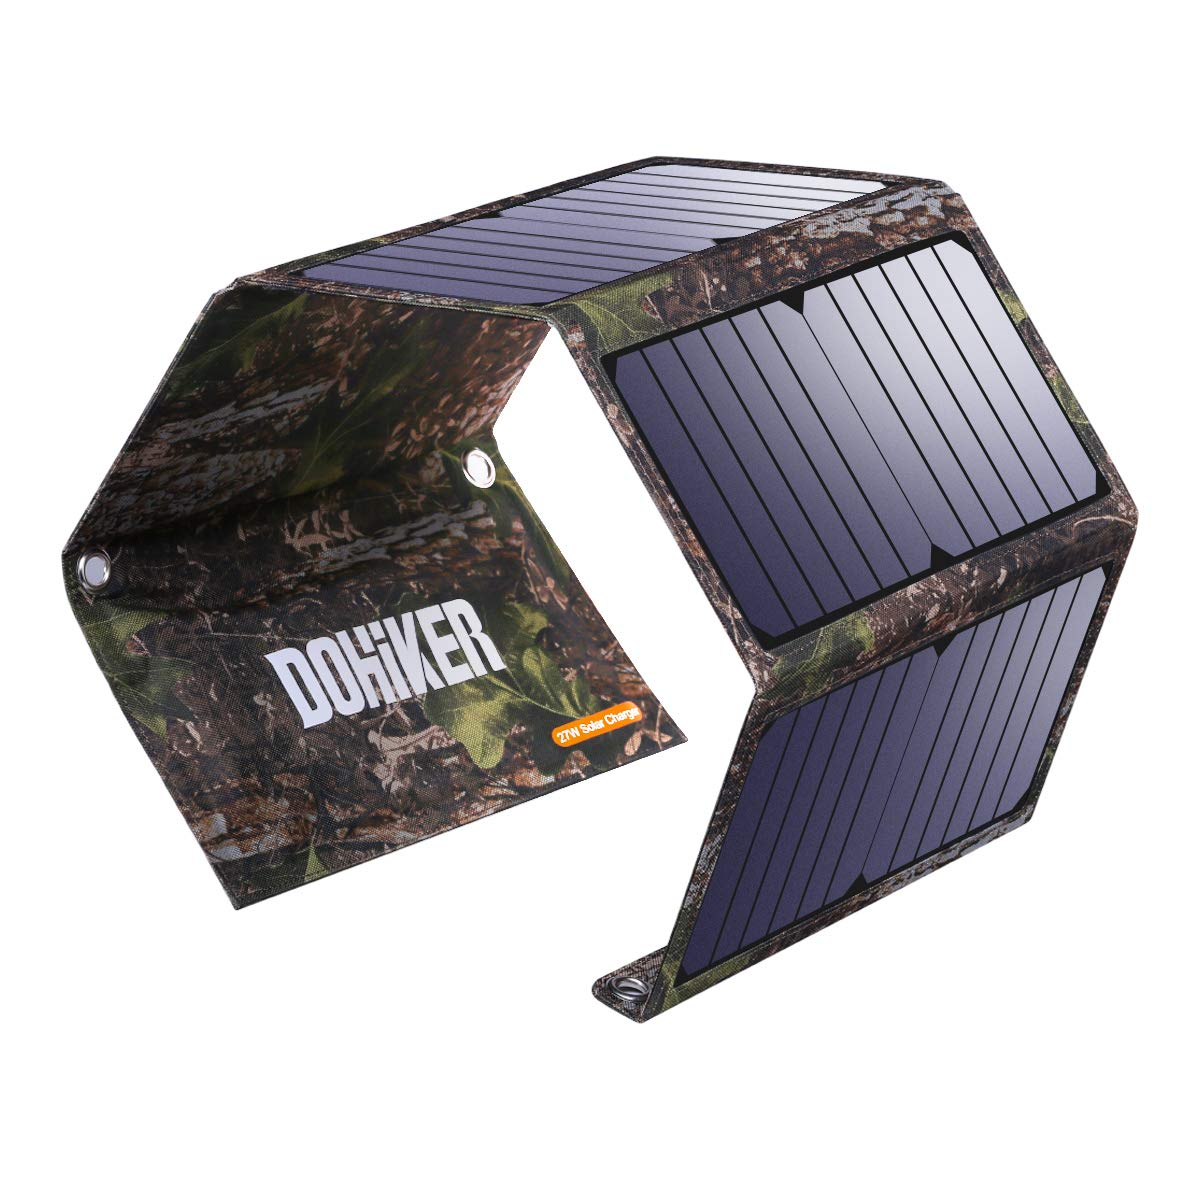 Dohiker Portable Foldable Solar Panel Charger, 27W Solar Phone Charger with 3 USB Ports,Durable & Waterproof Solar Charger for Cell Phone, PowerBank, and Electronic Devices, Great for Camping, Hiking by Dohiker (Image #1)